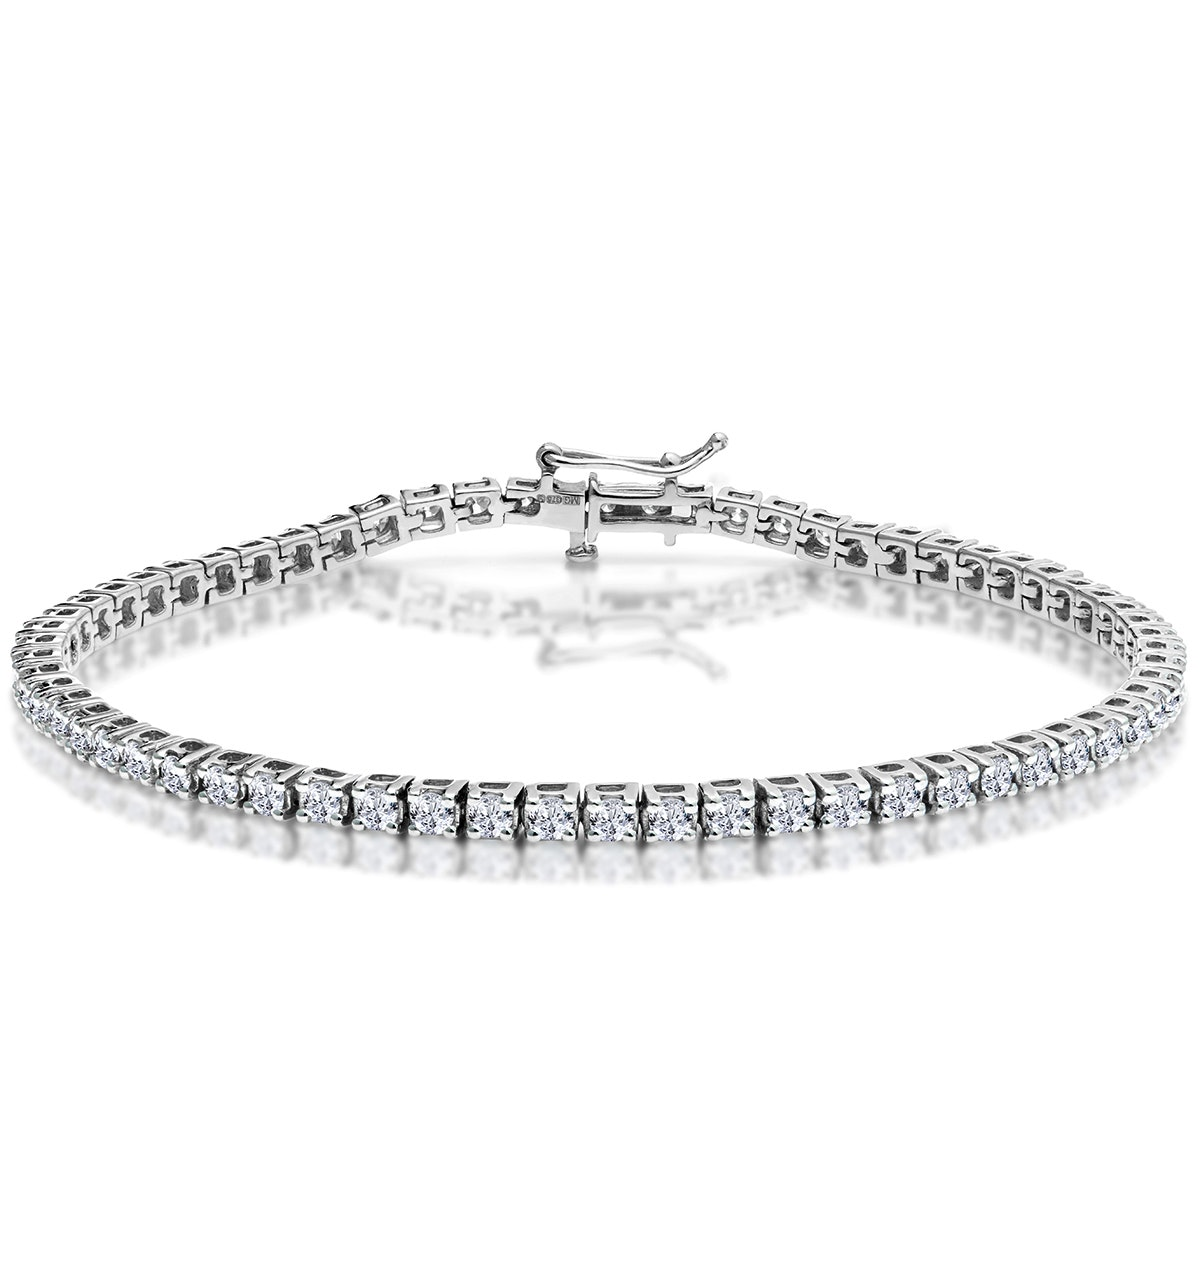 3ct Diamond Tennis Bracelet Claw Set in 9K White Gold